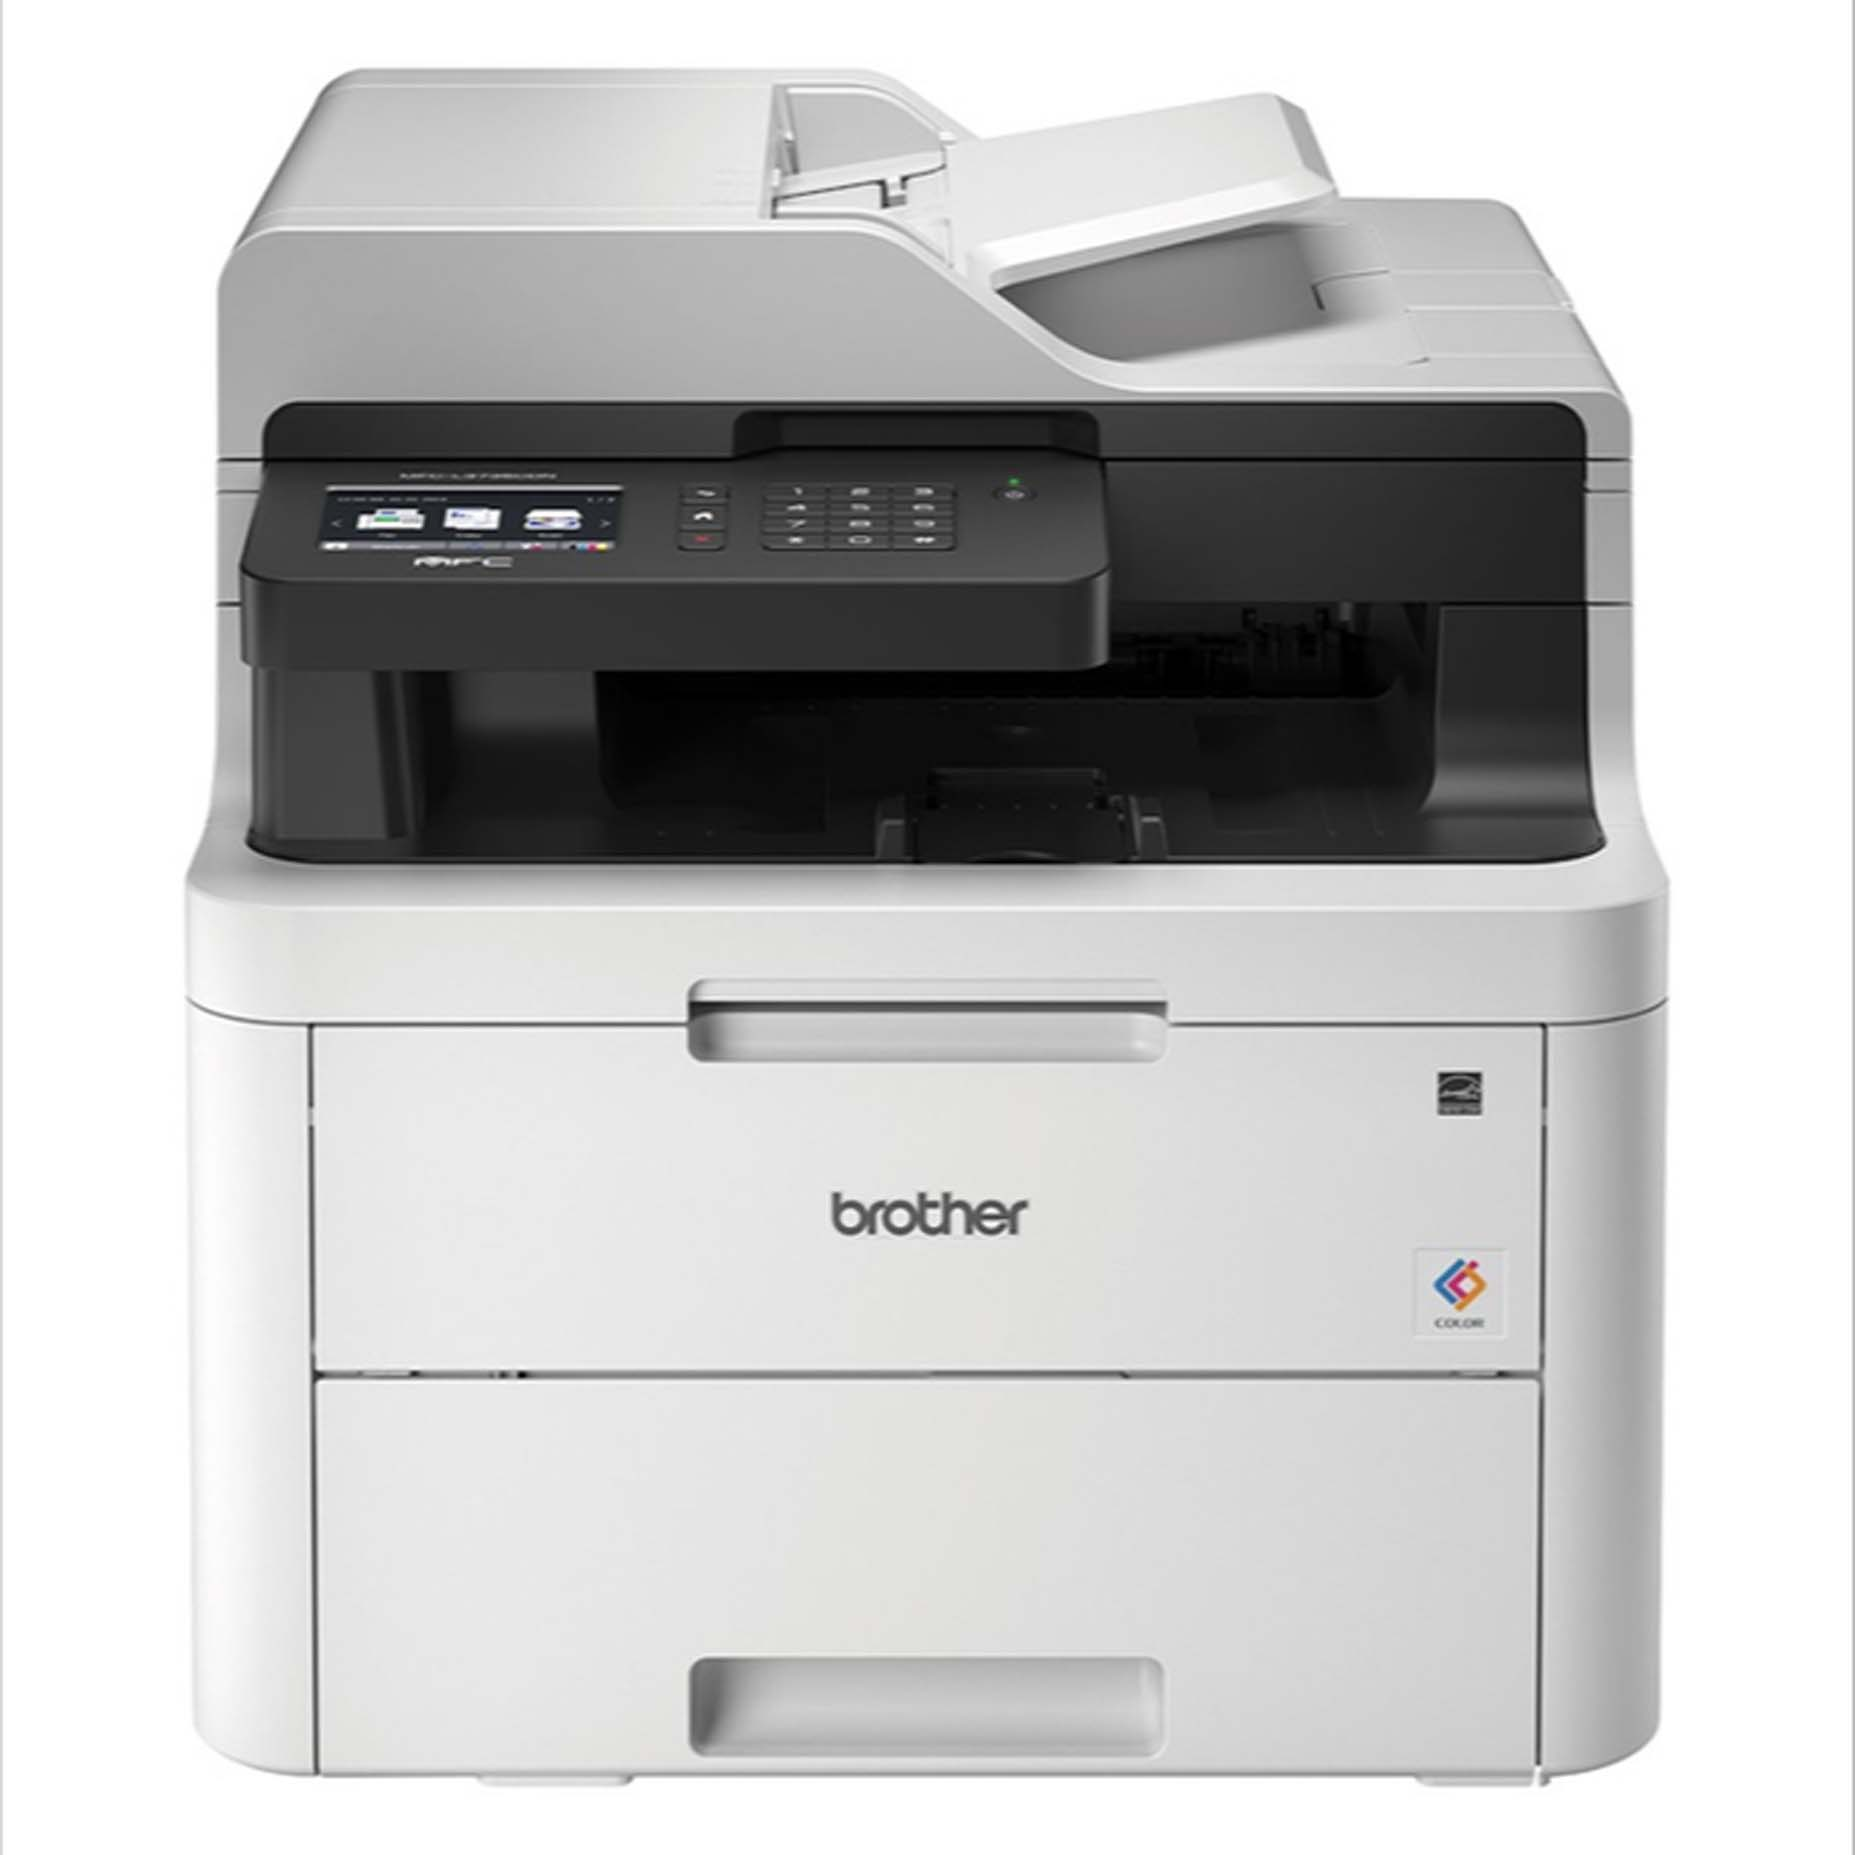 Harga Brother MFC-L3735CDN Printer Laser Colour Multifunction Duplex + Fax + WiFi